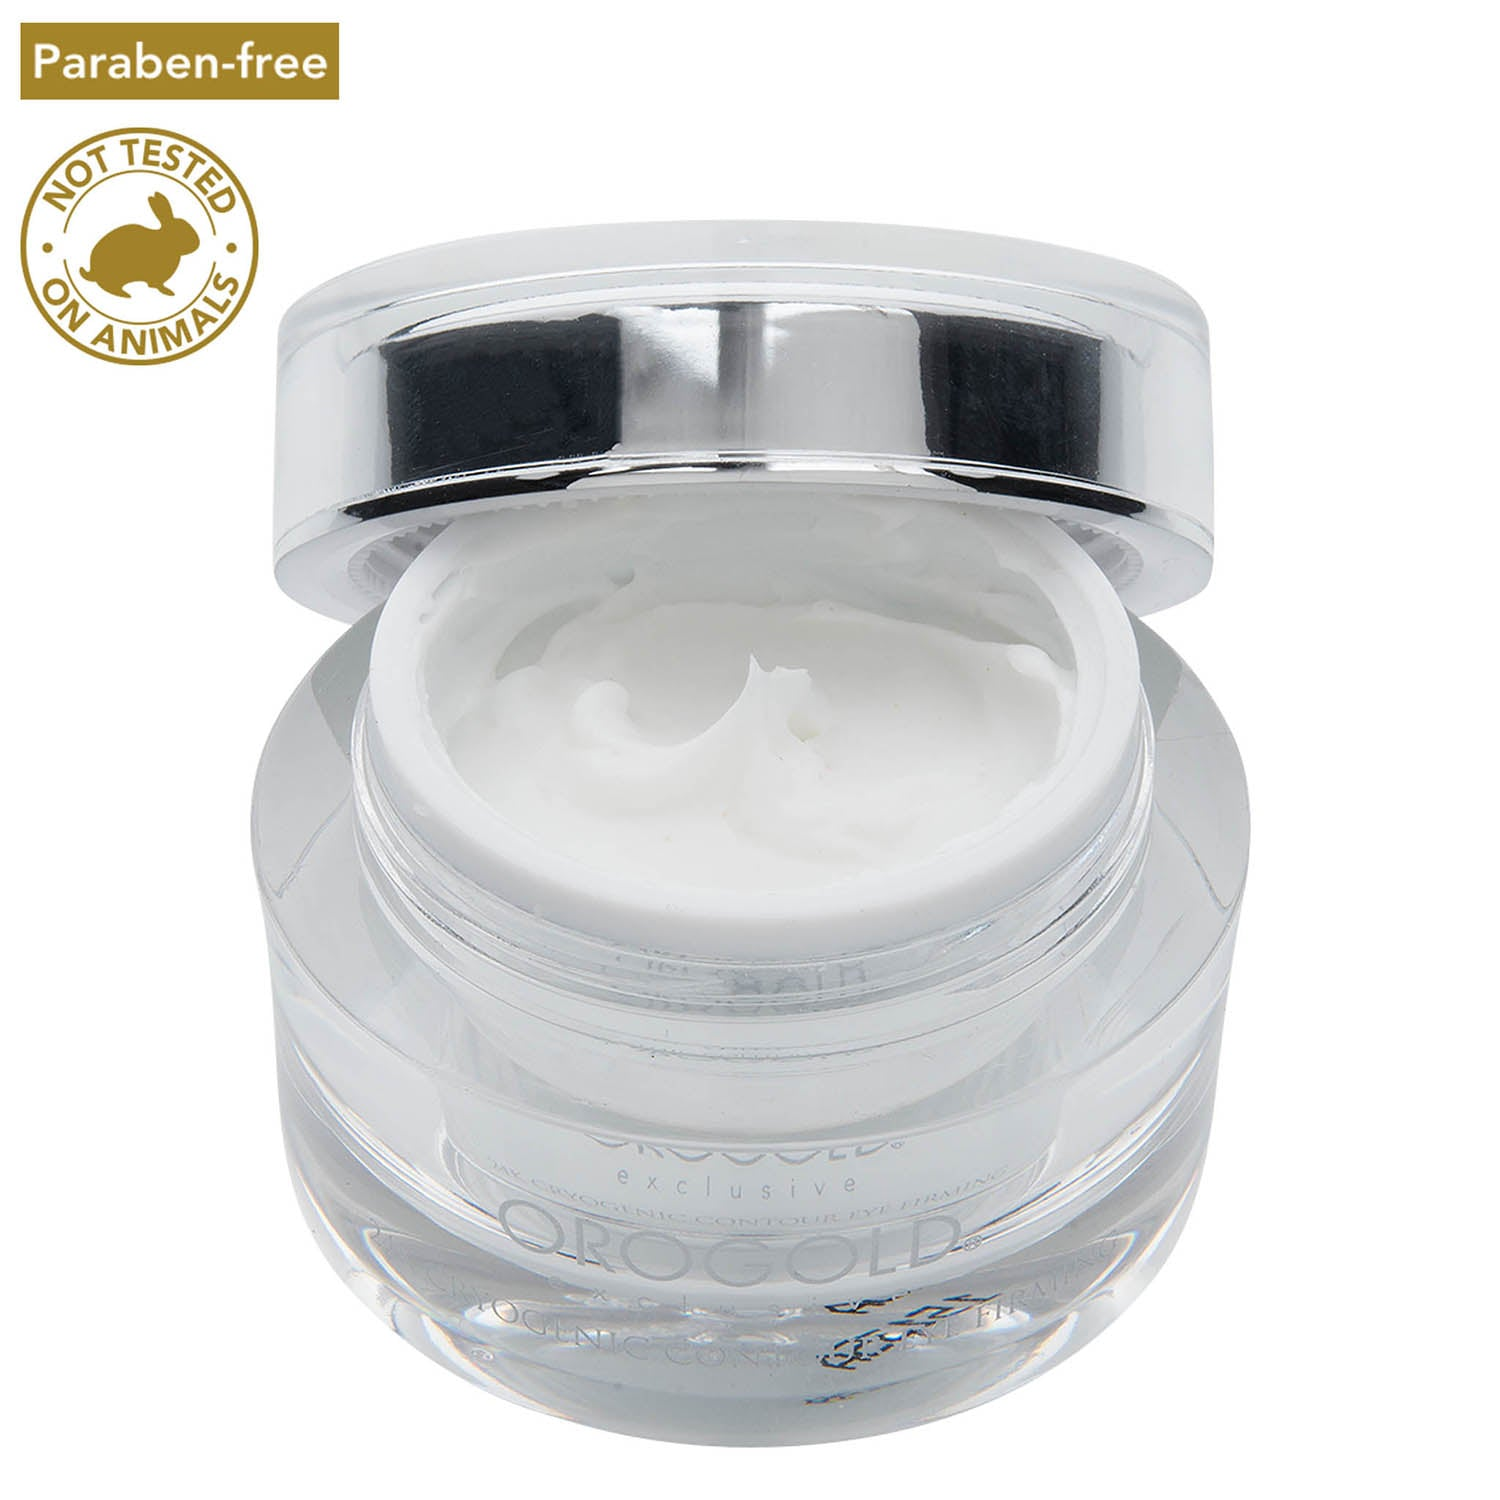 orogold 24k cryogenic contour eye firming